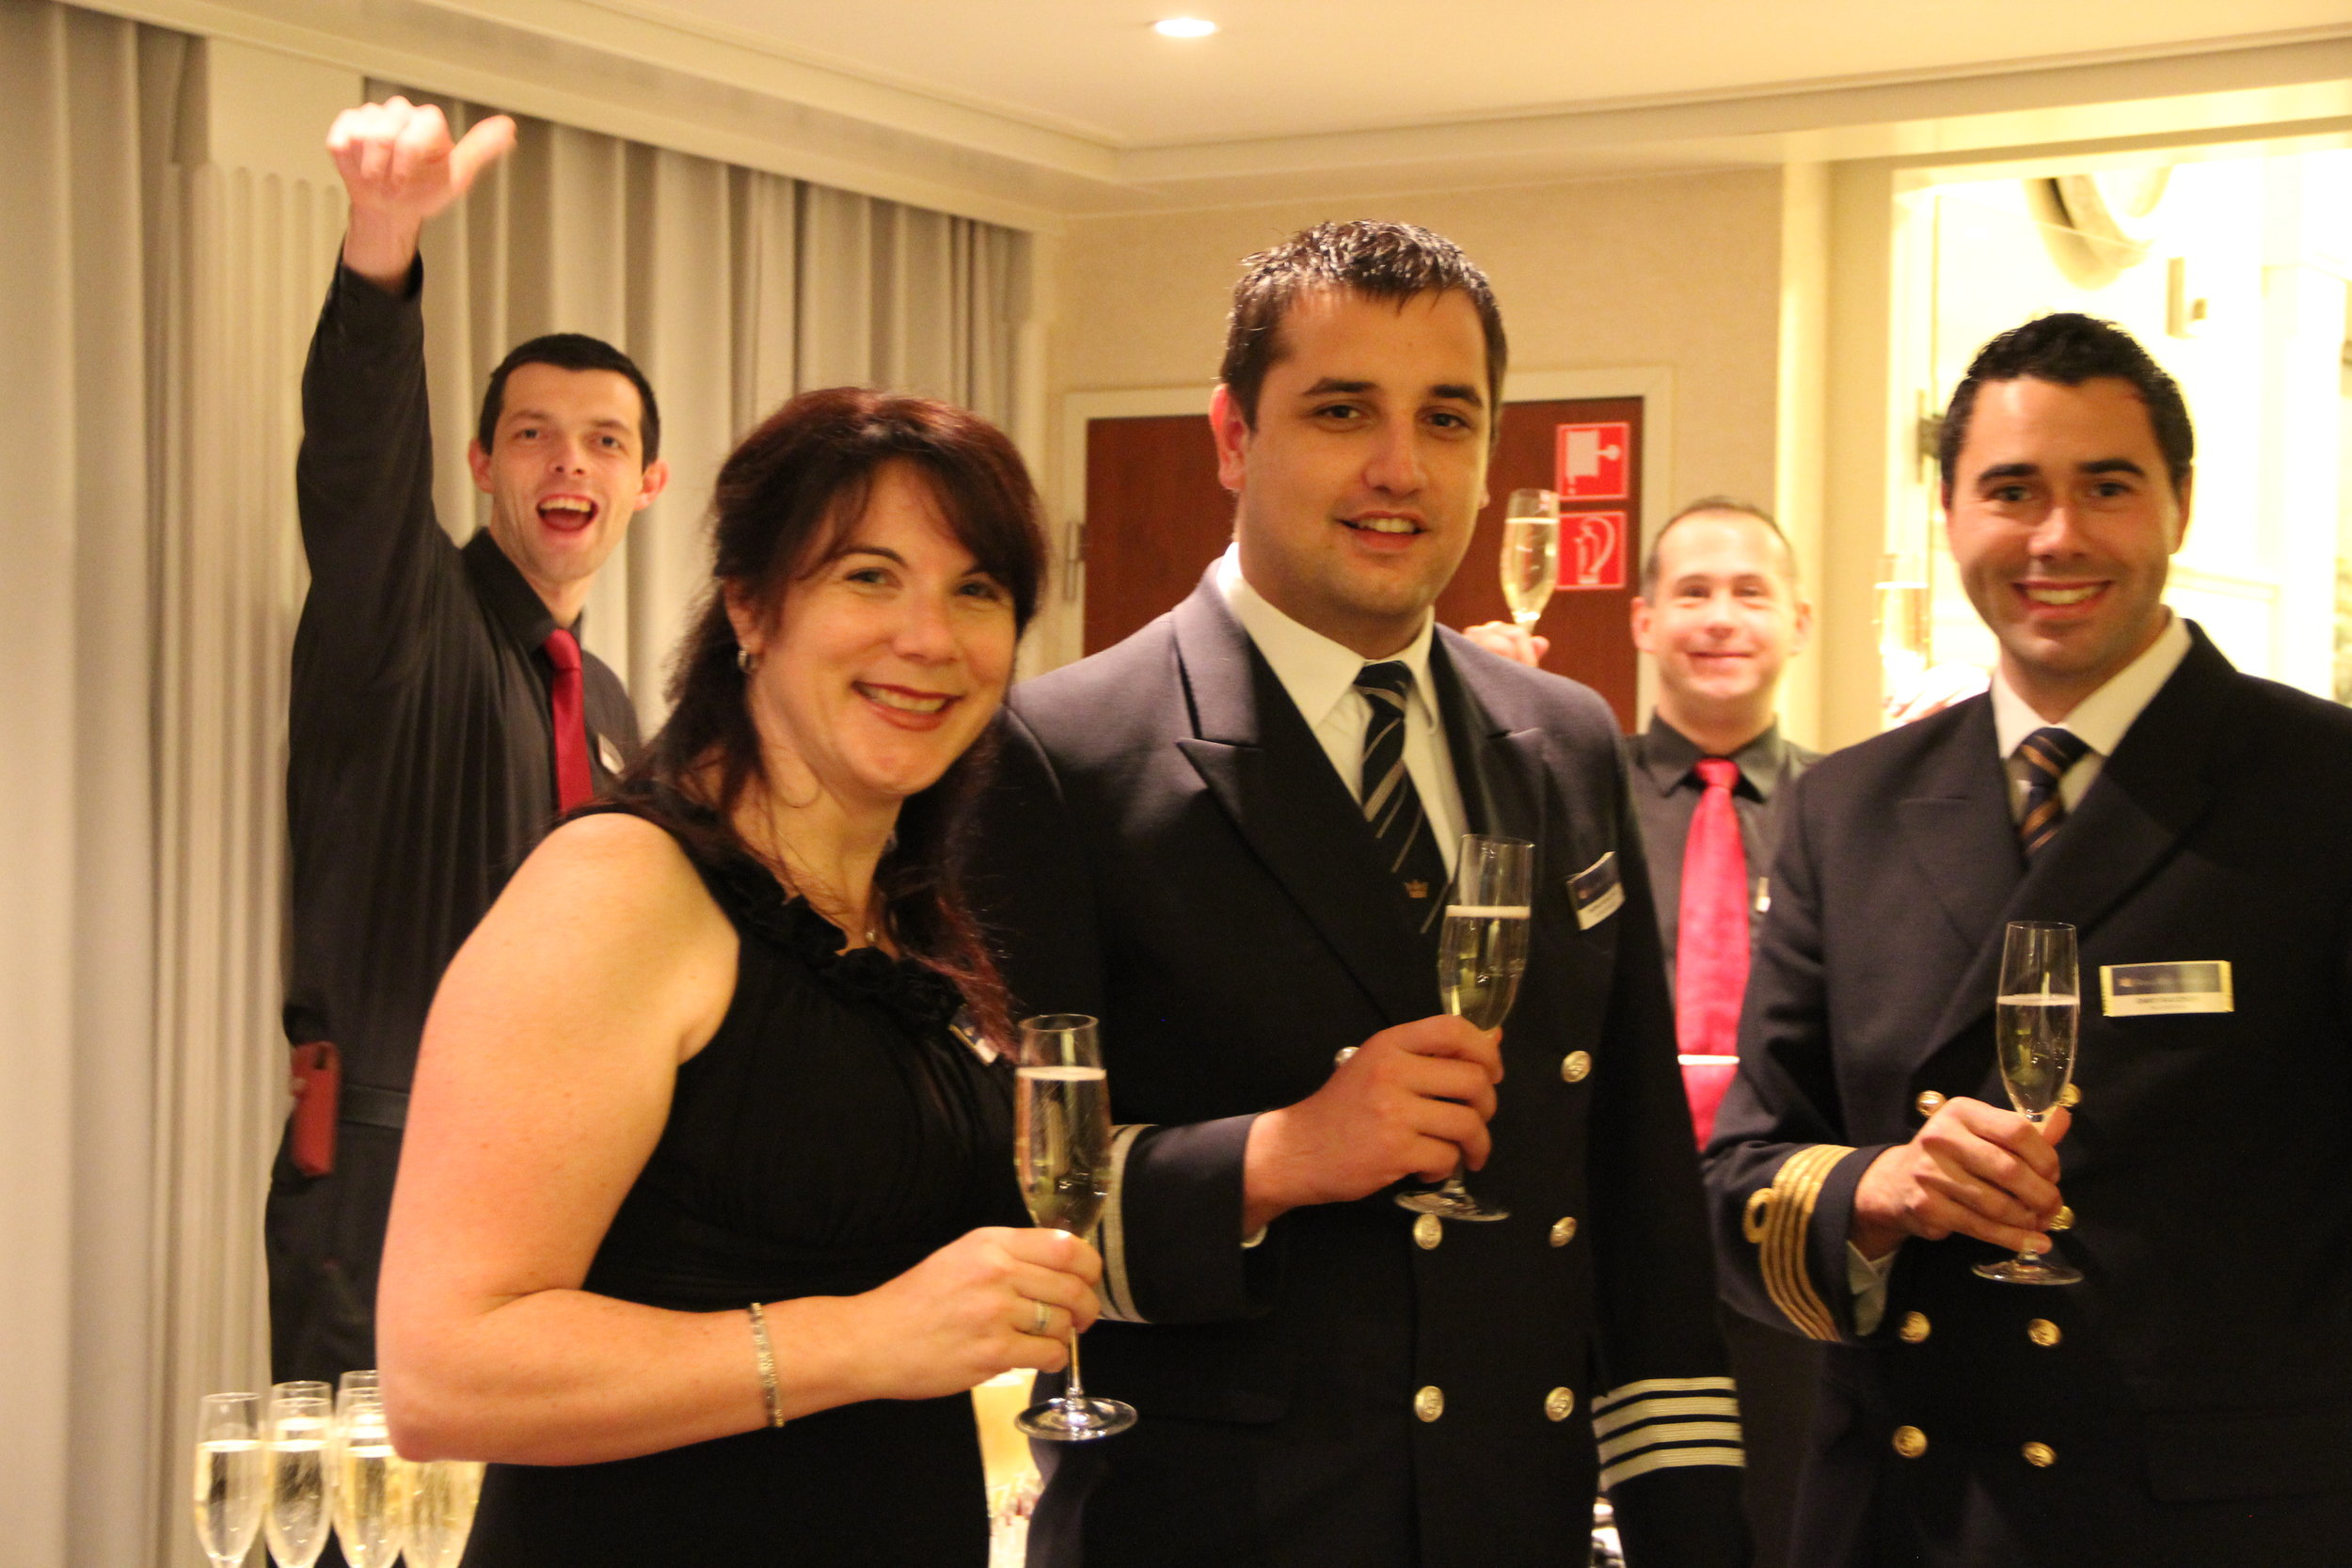 Here is some of the crew who pulled off that wonderful 2014 cruise—amazing adjustment!